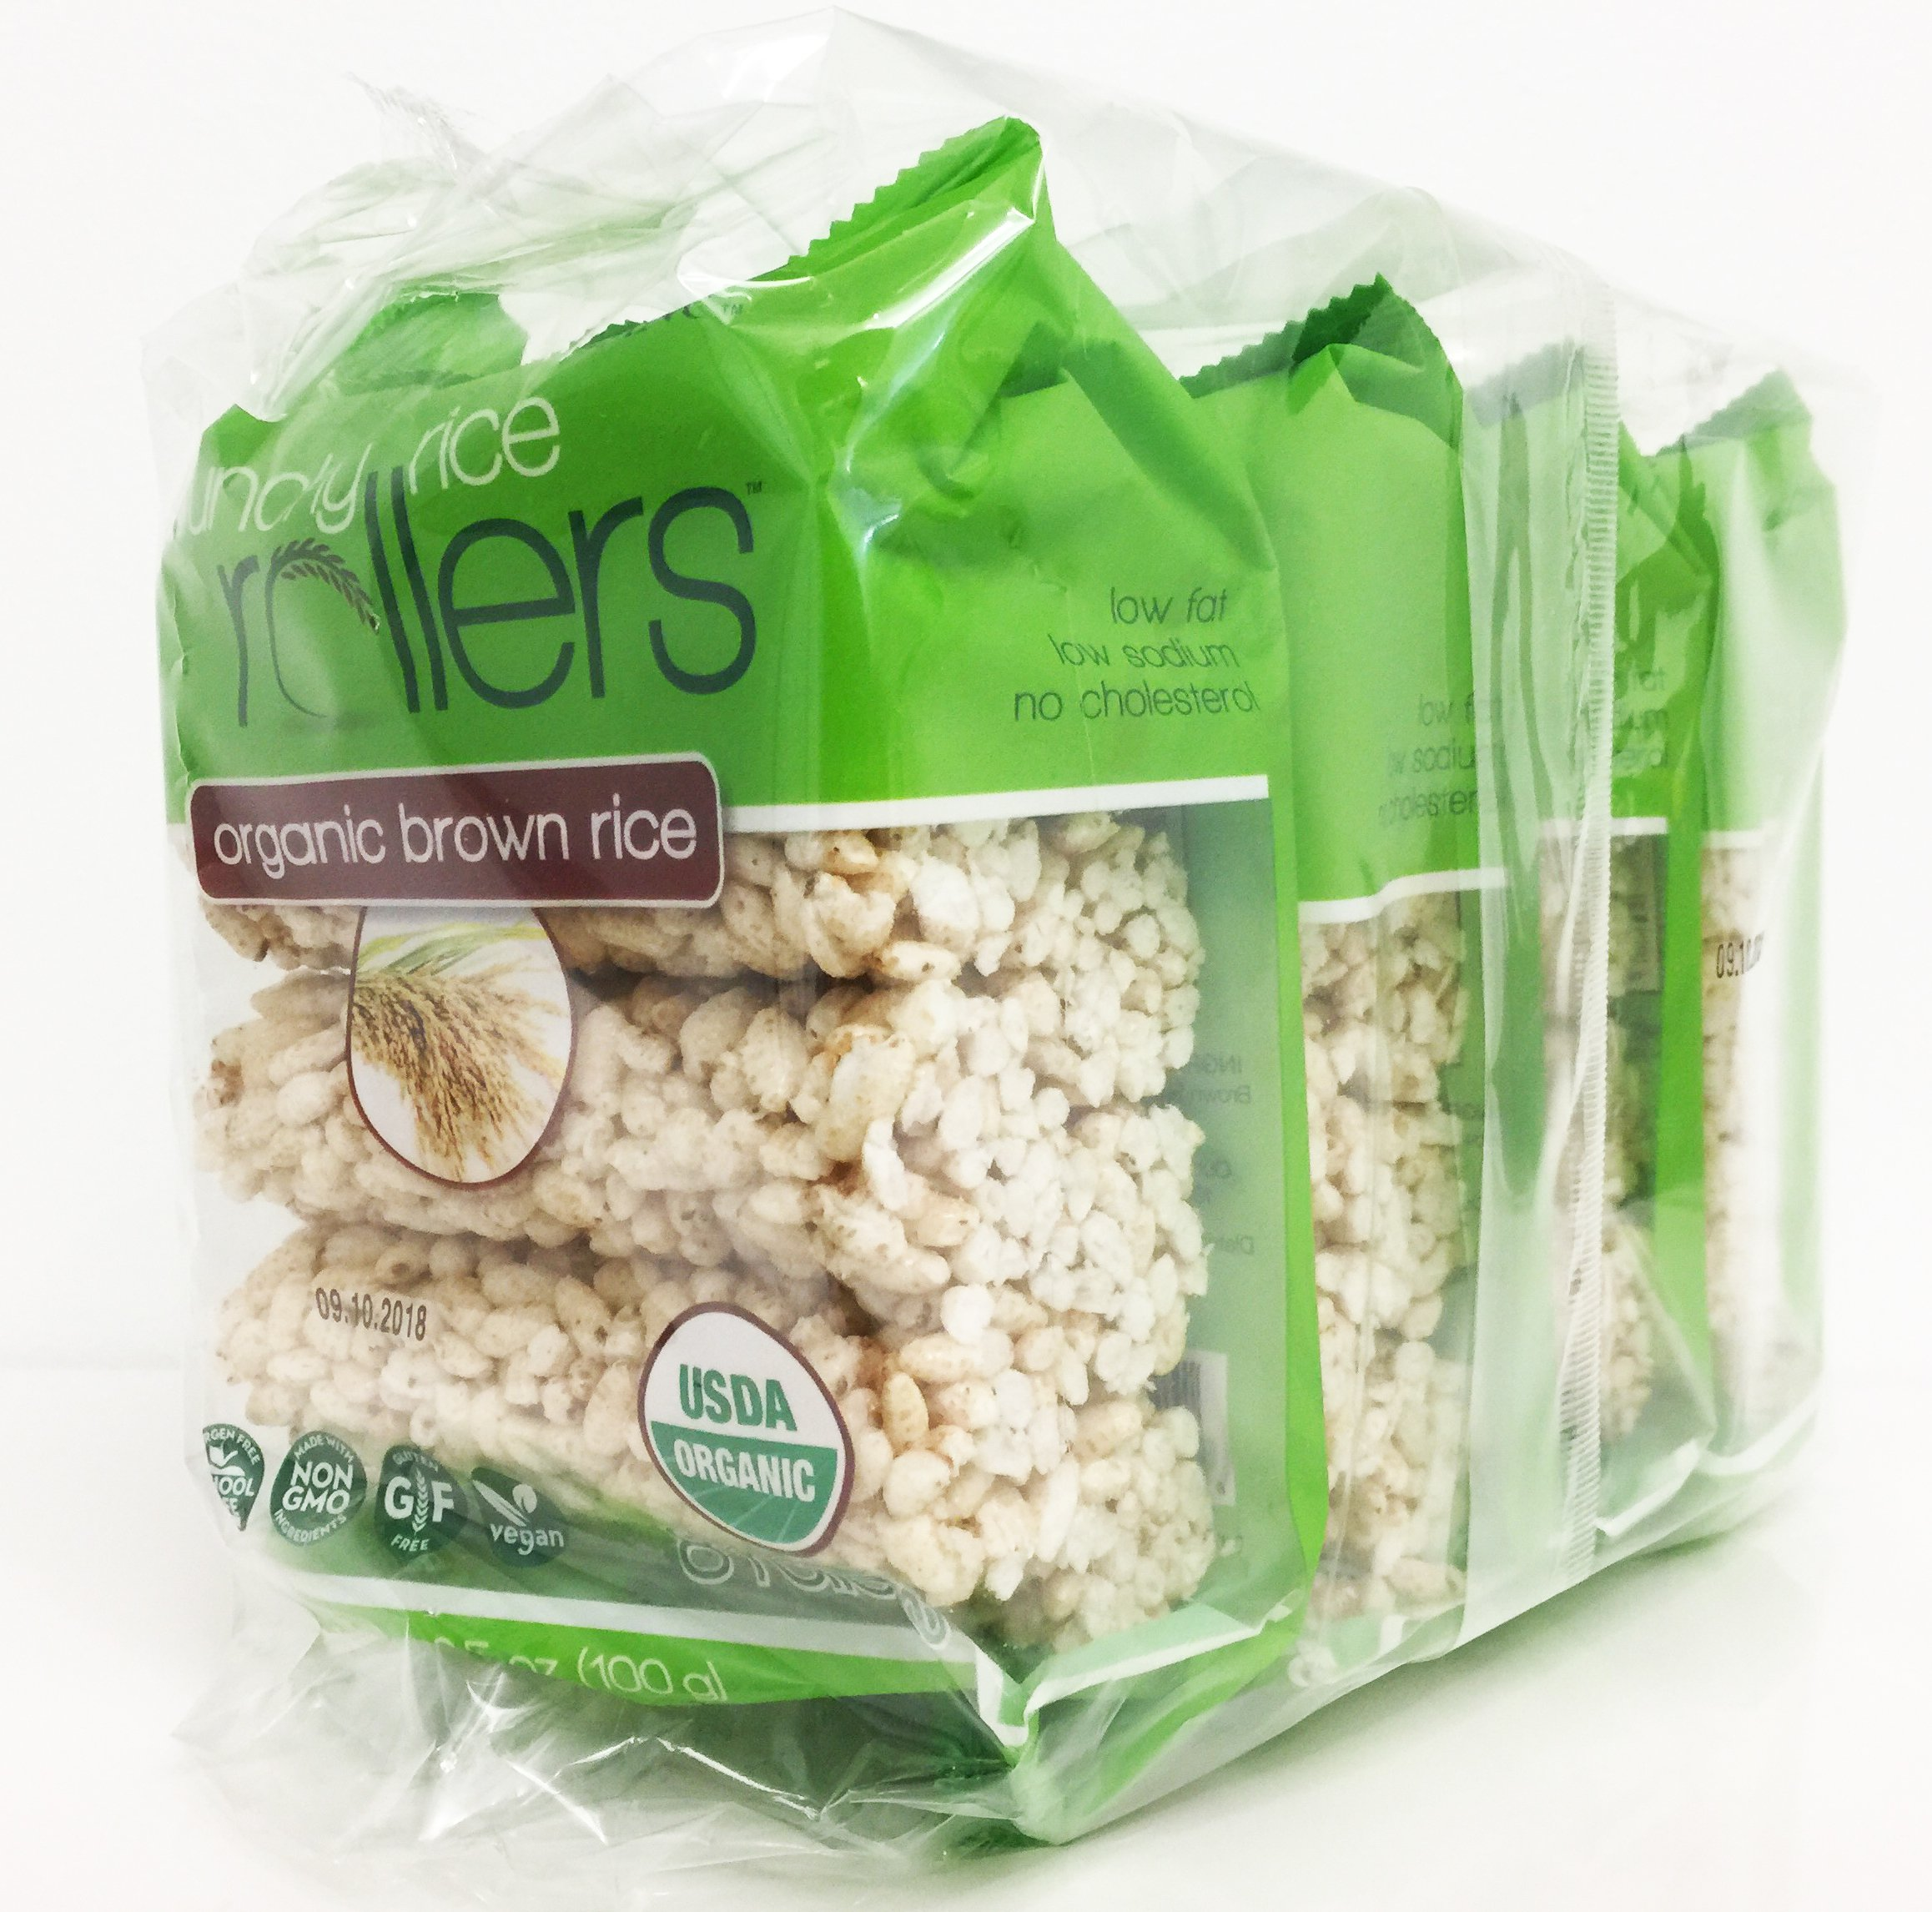 Bamboo Lane Crunchy Rice Rollers - Organic Brown Rice, 3.5oz (4 Packs of 8 Rollers)